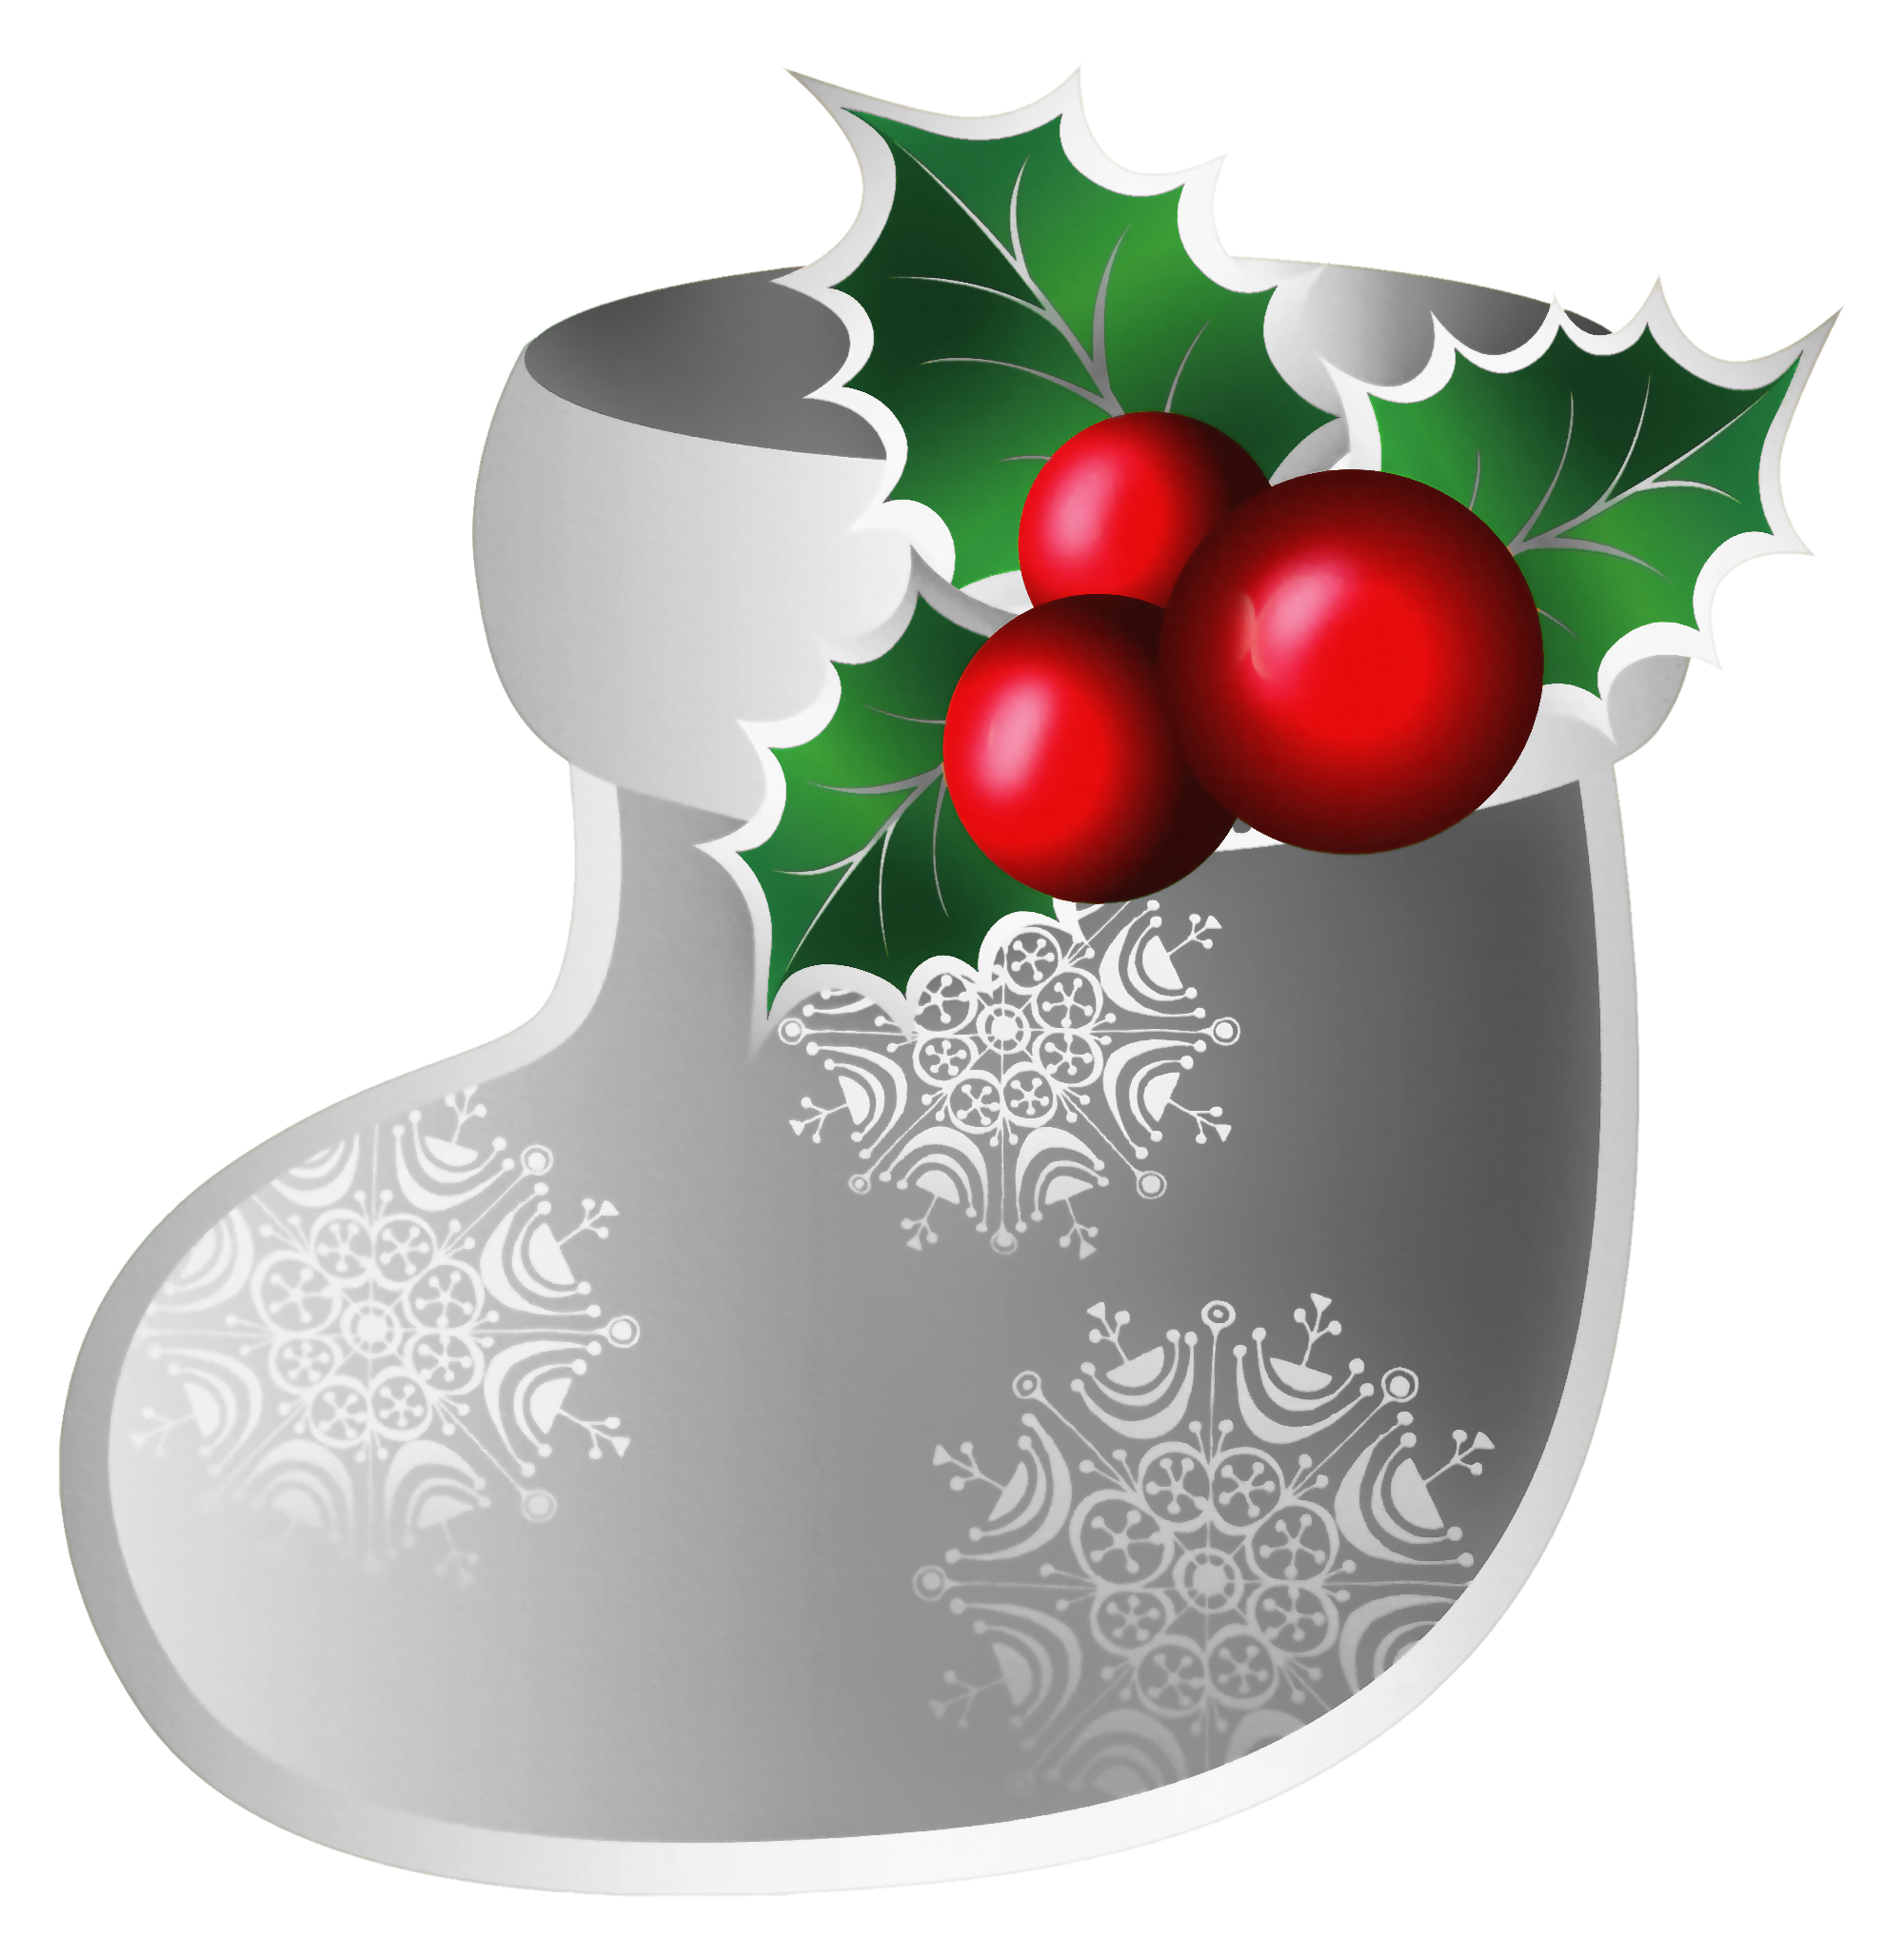 Christmas greetings clipart clip art royalty free Transparent Christmas Silver Stoking PNG Clipart | Gallery ... clip art royalty free